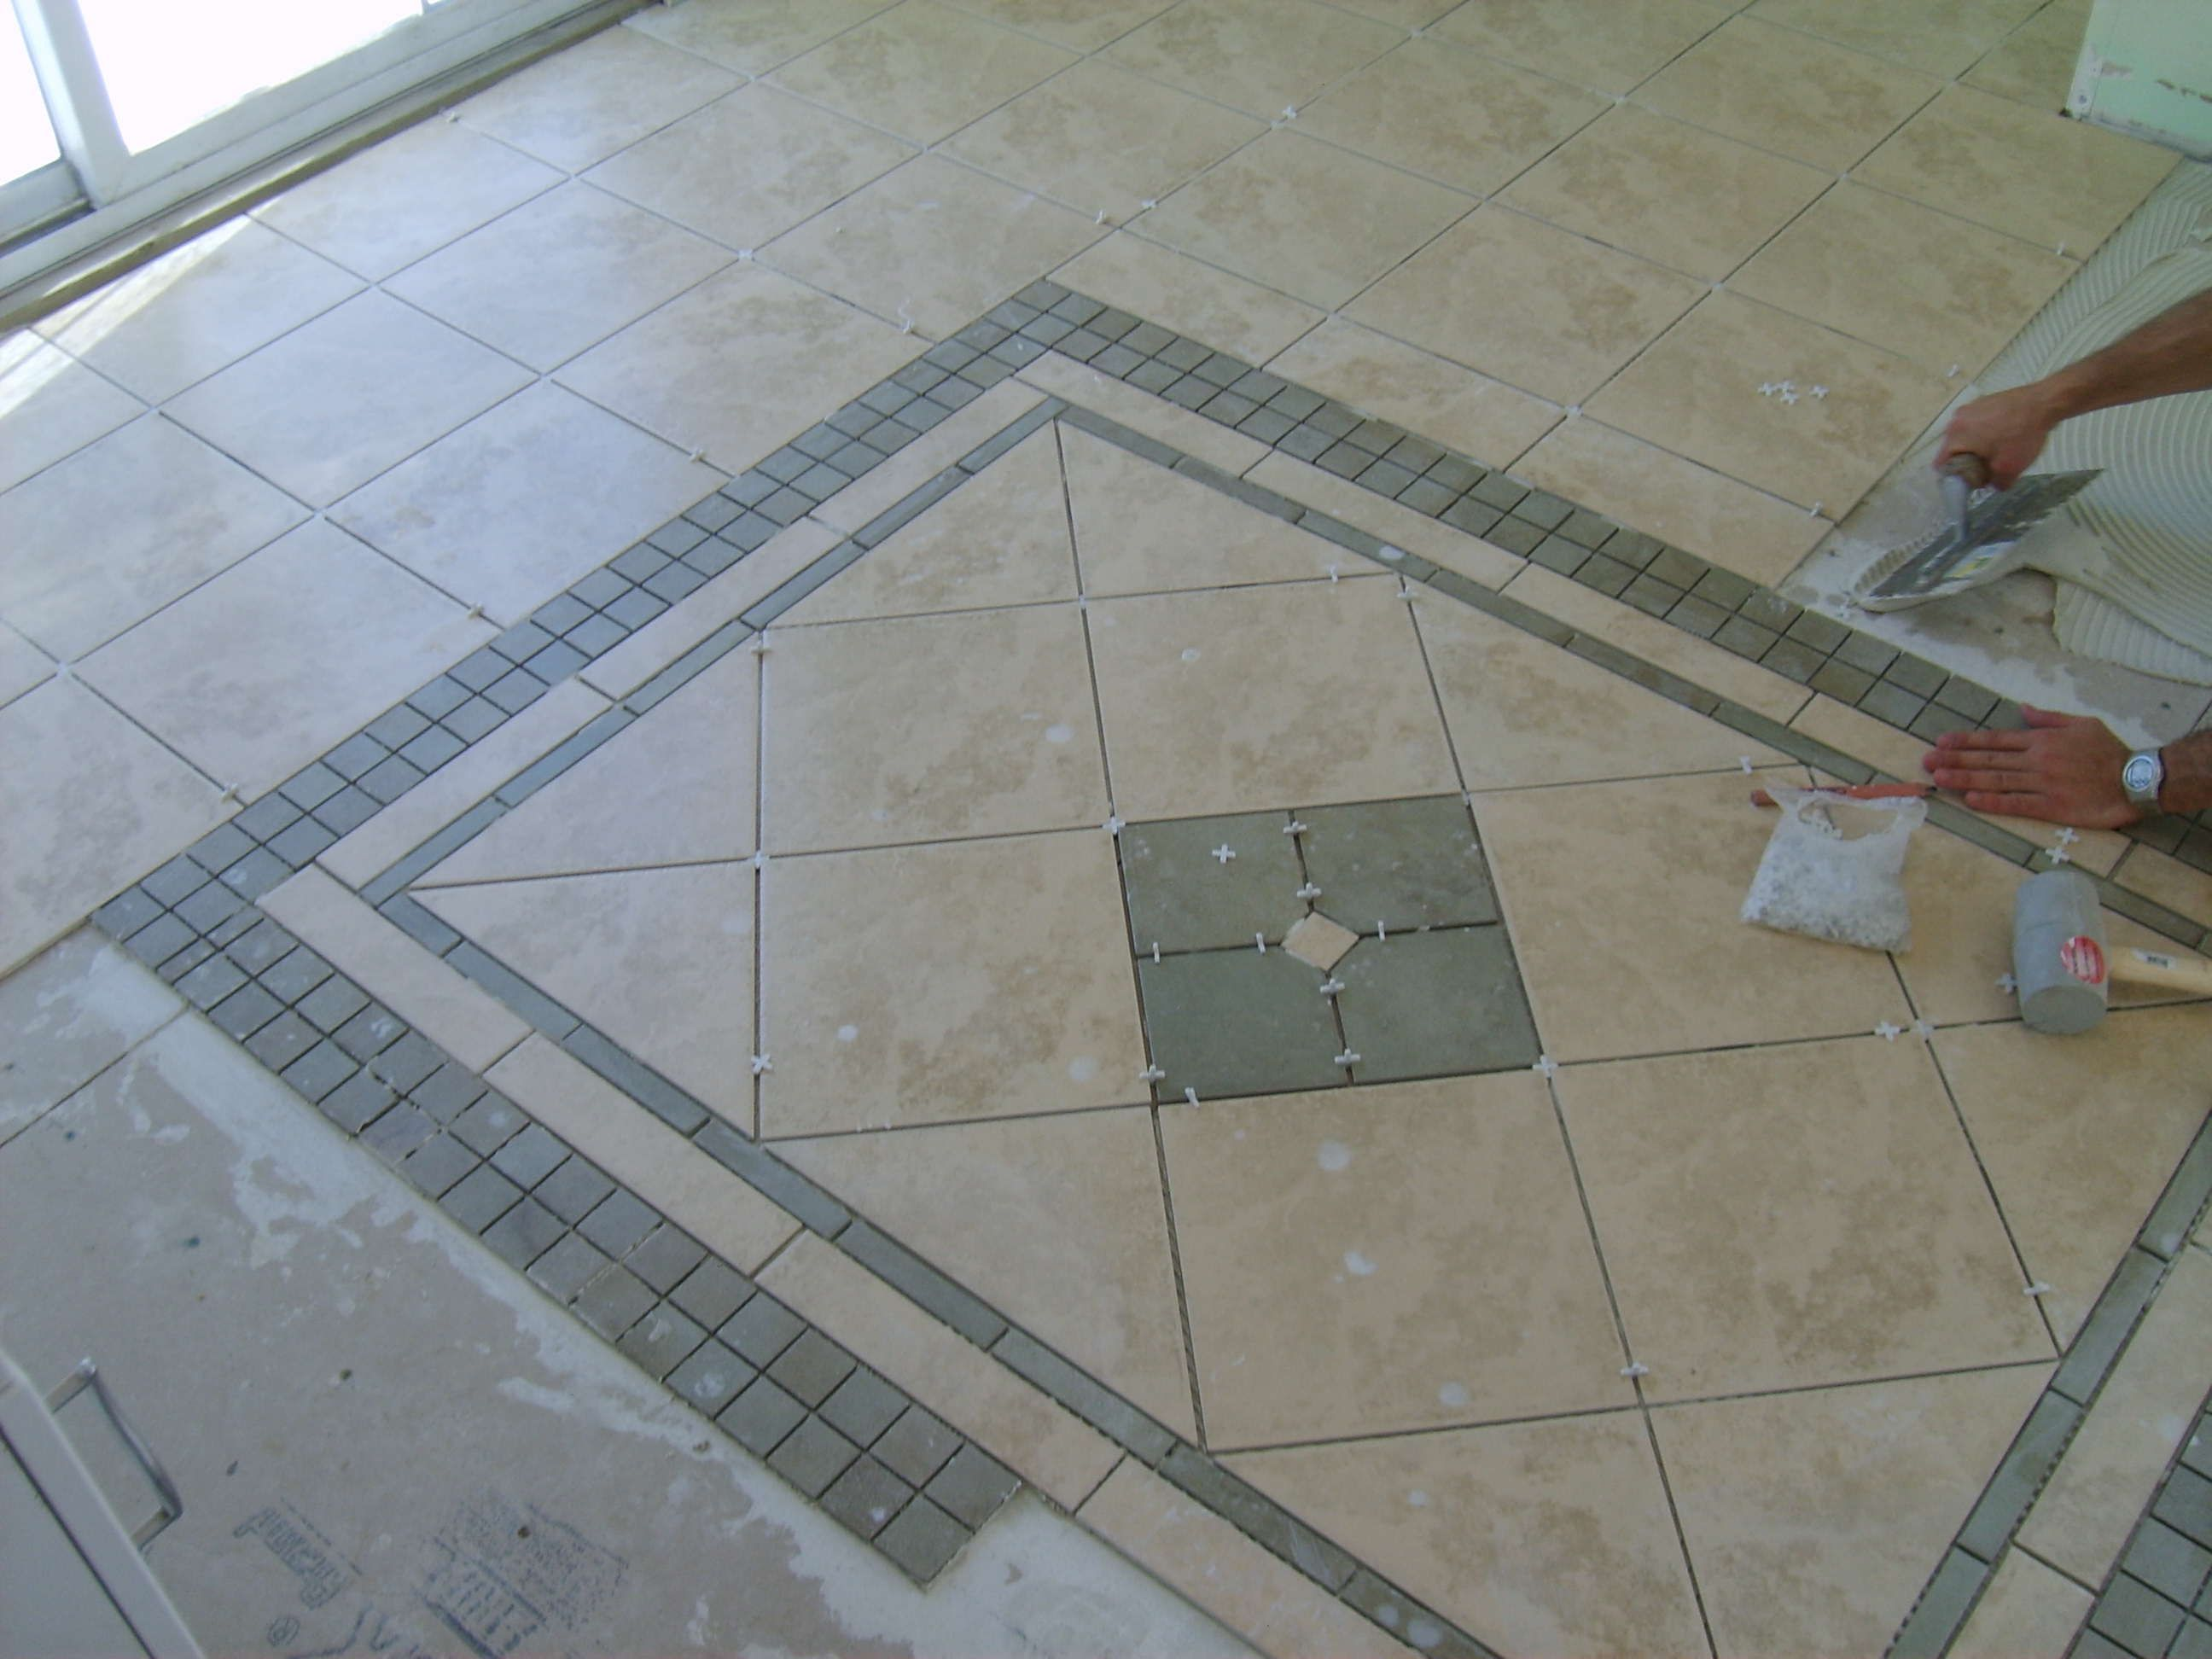 Entry Tile Patterns Floor Patterns For Tile Posted By